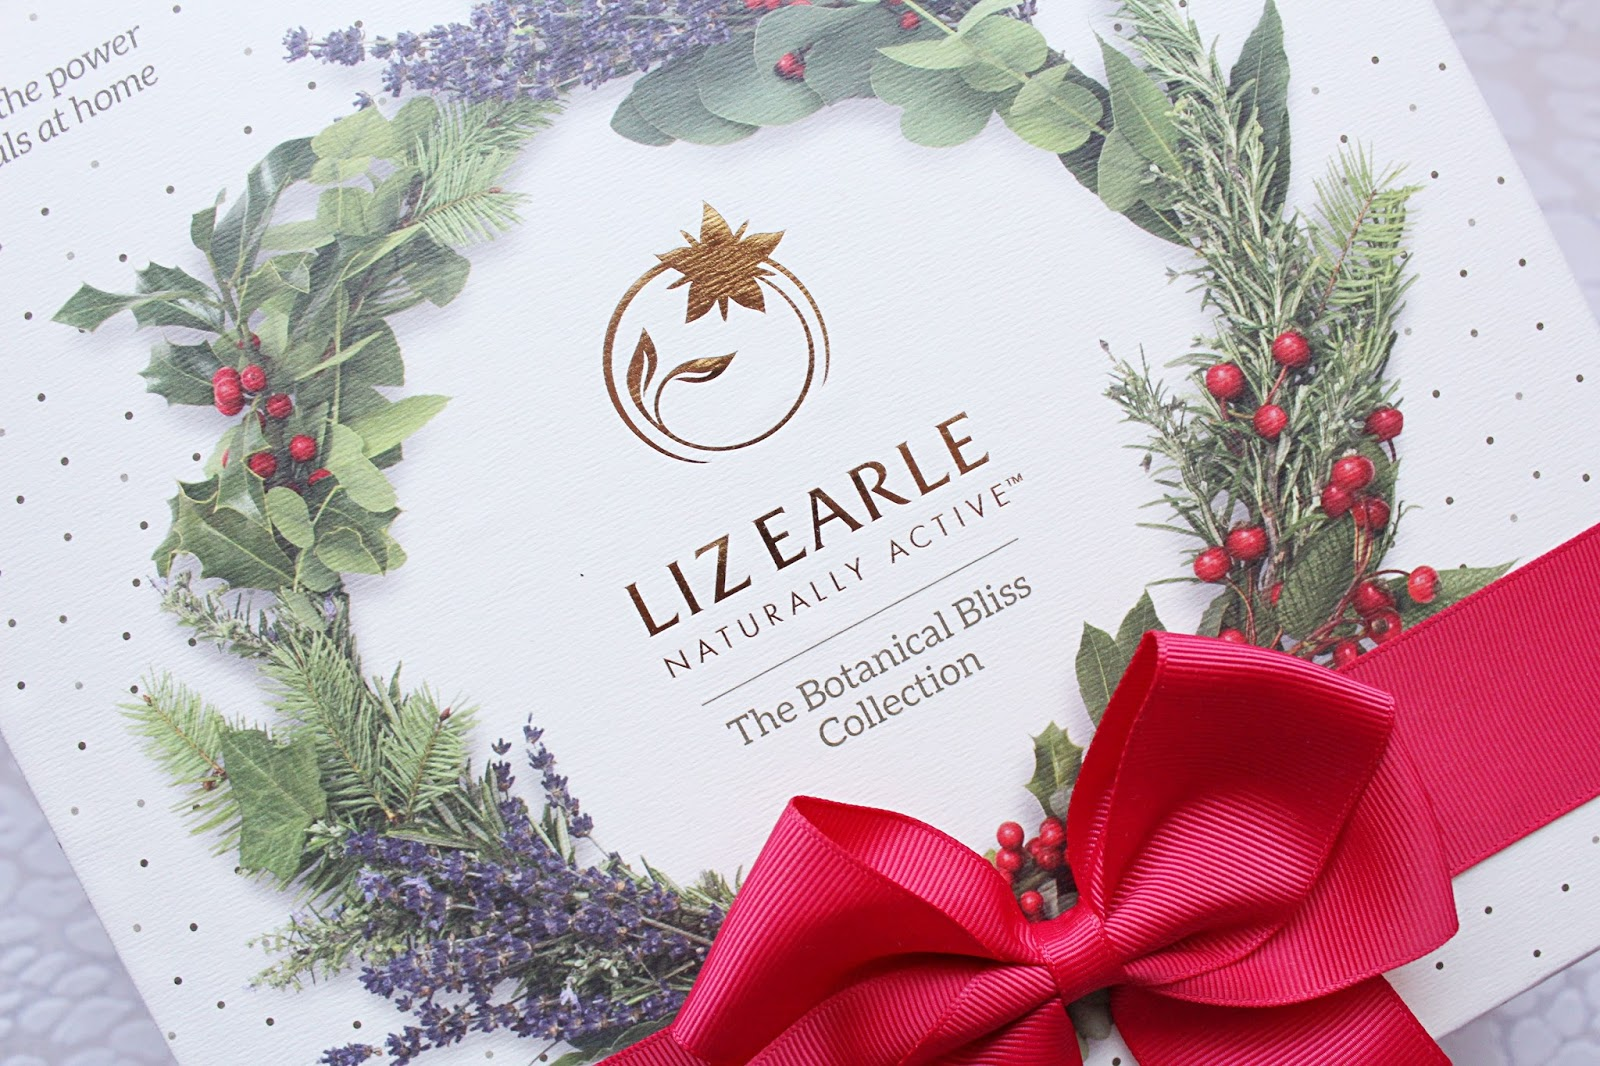 Liz Earle Black Friday Offer 2016